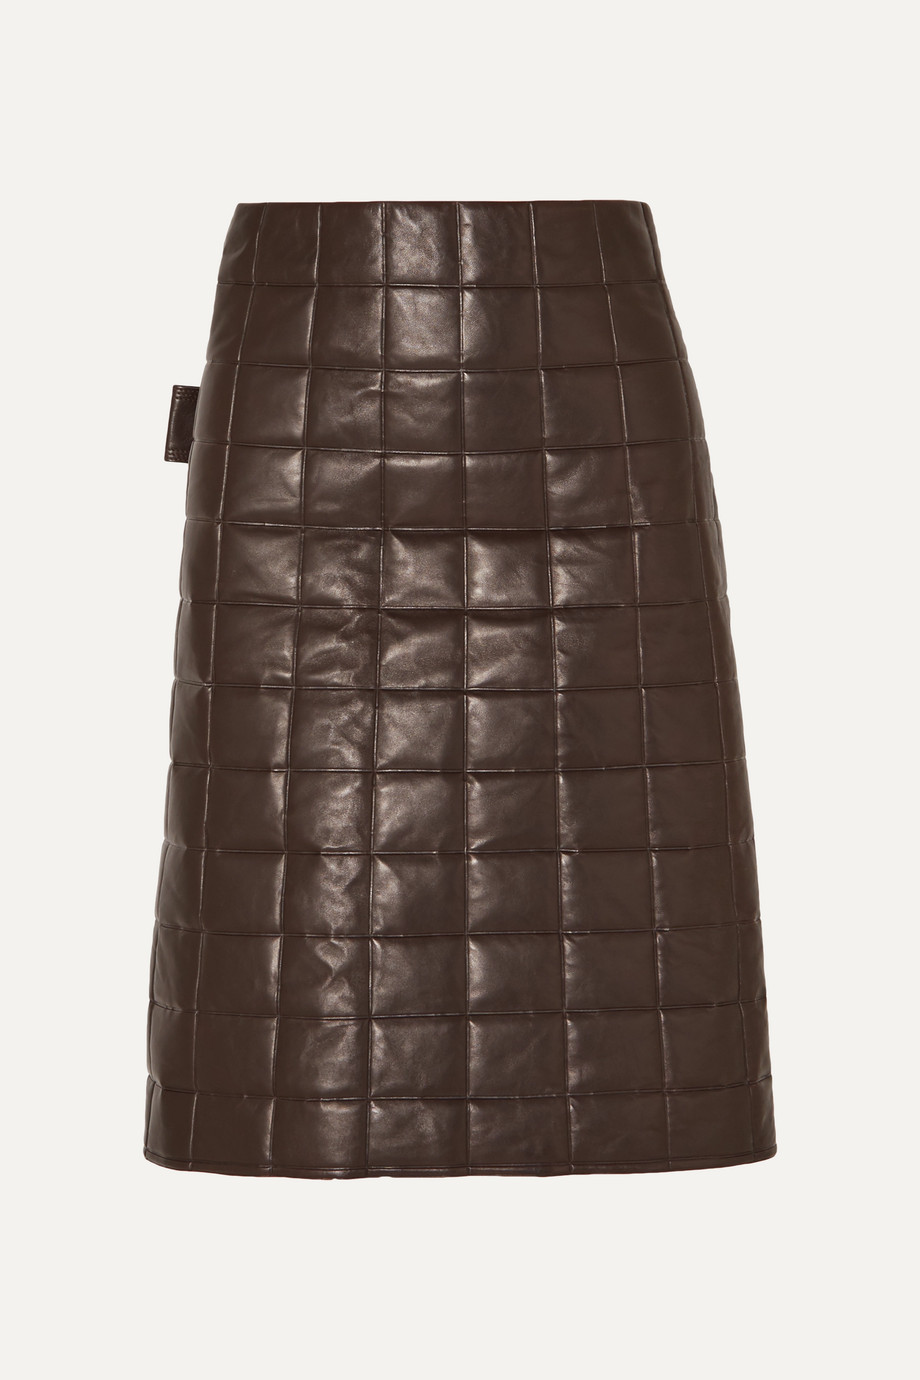 Bottega Veneta Quilted leather skirt